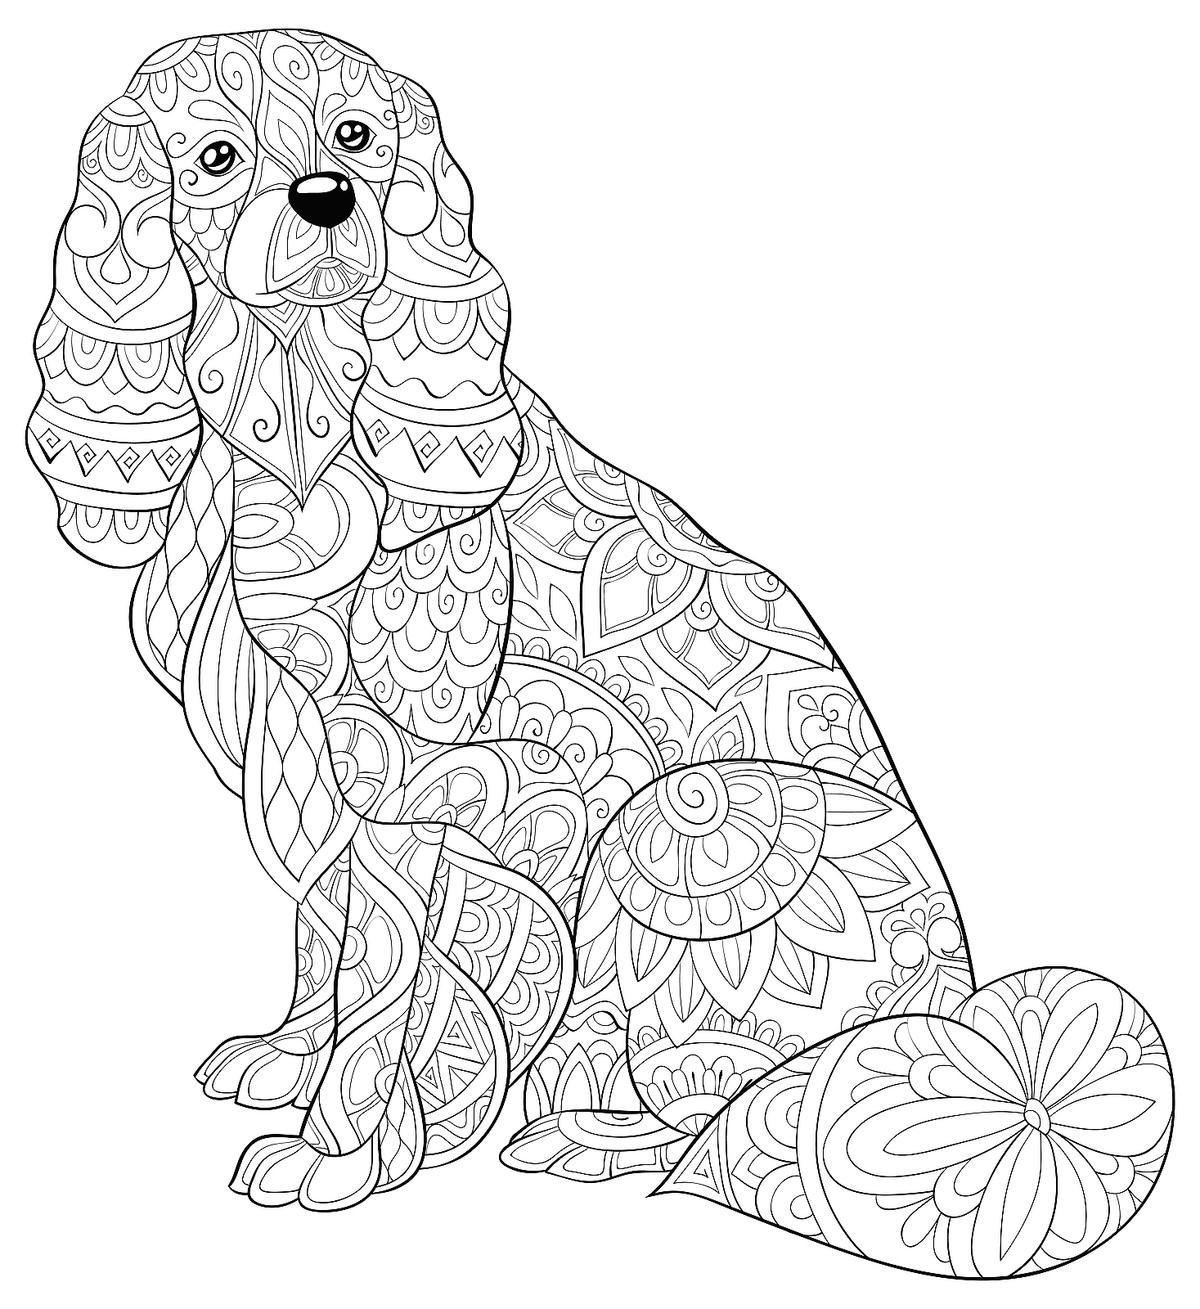 dog color sheets dog breed coloring pages color dog sheets 1 1